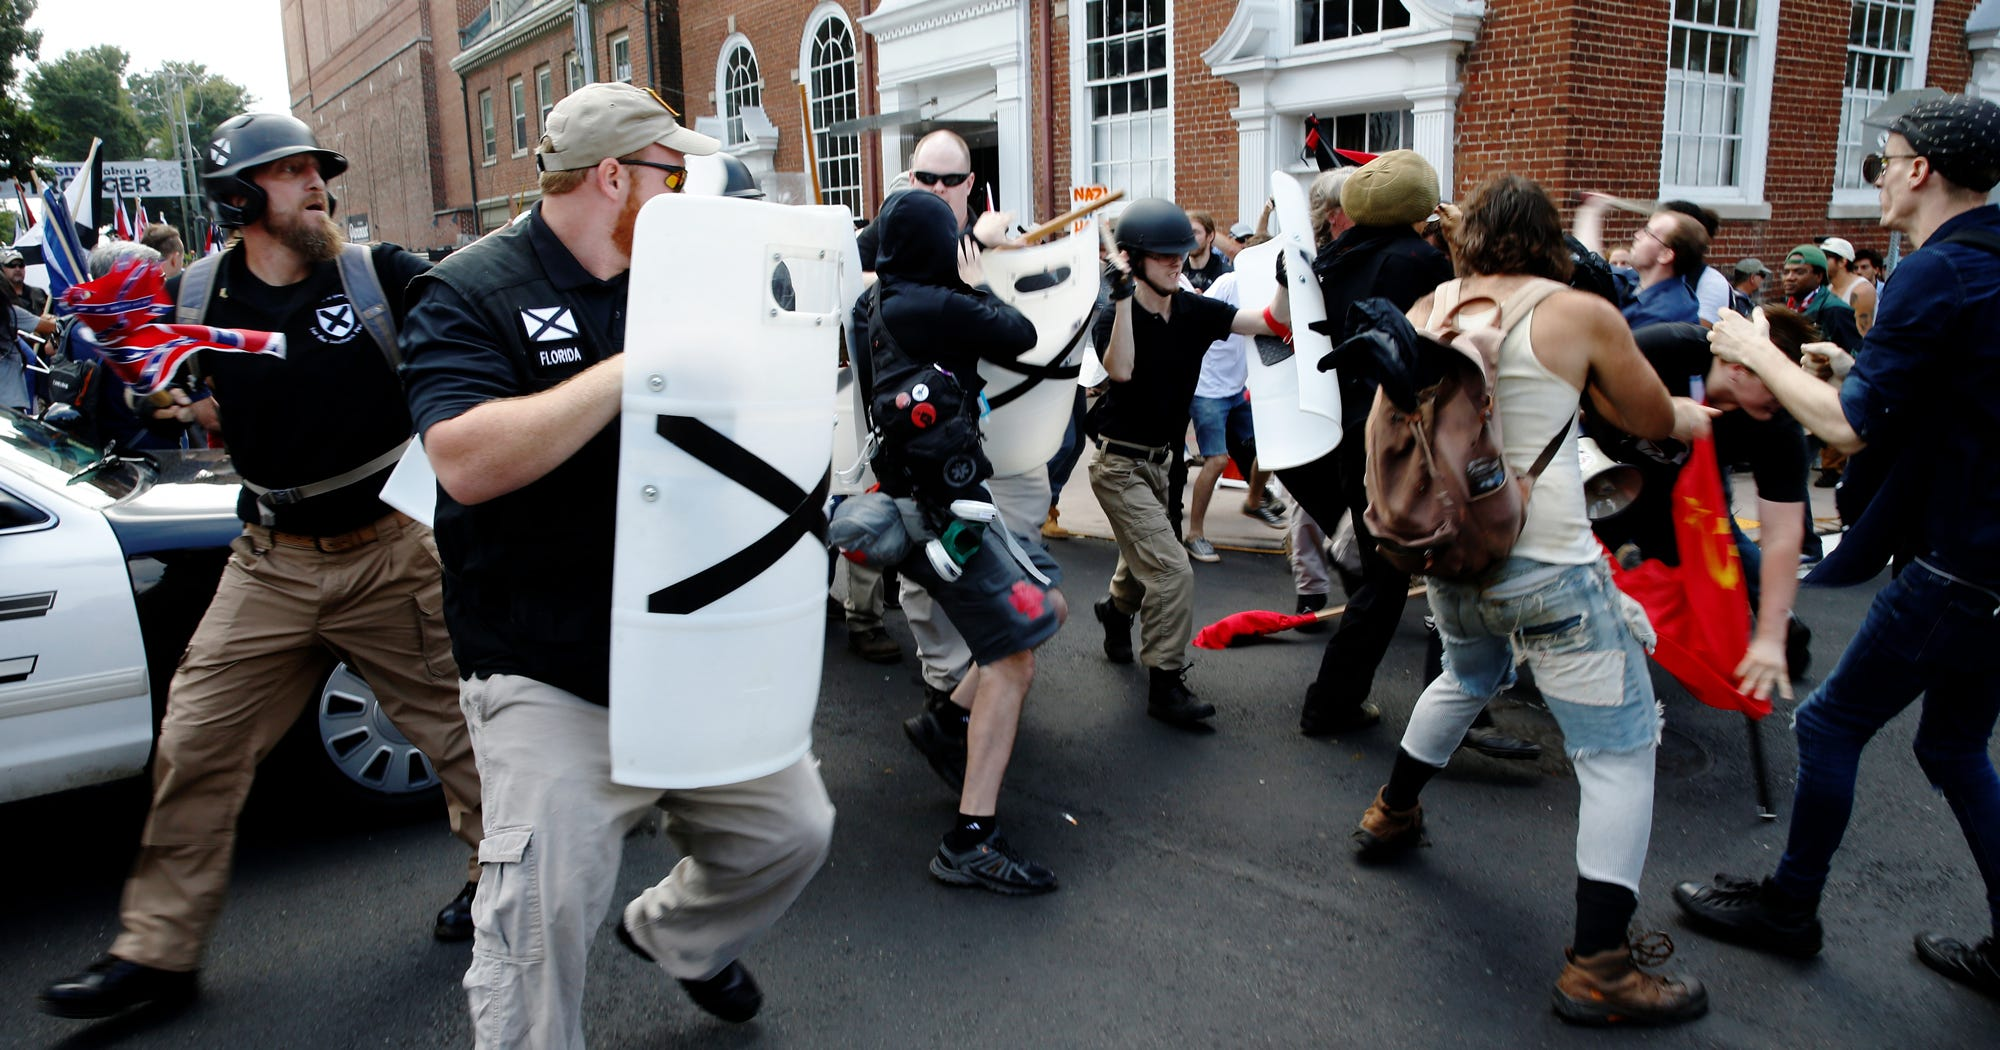 State Of Emergency Declared, Protesters Ordered To Evacuate Charlottesville Park After Violent Clashes